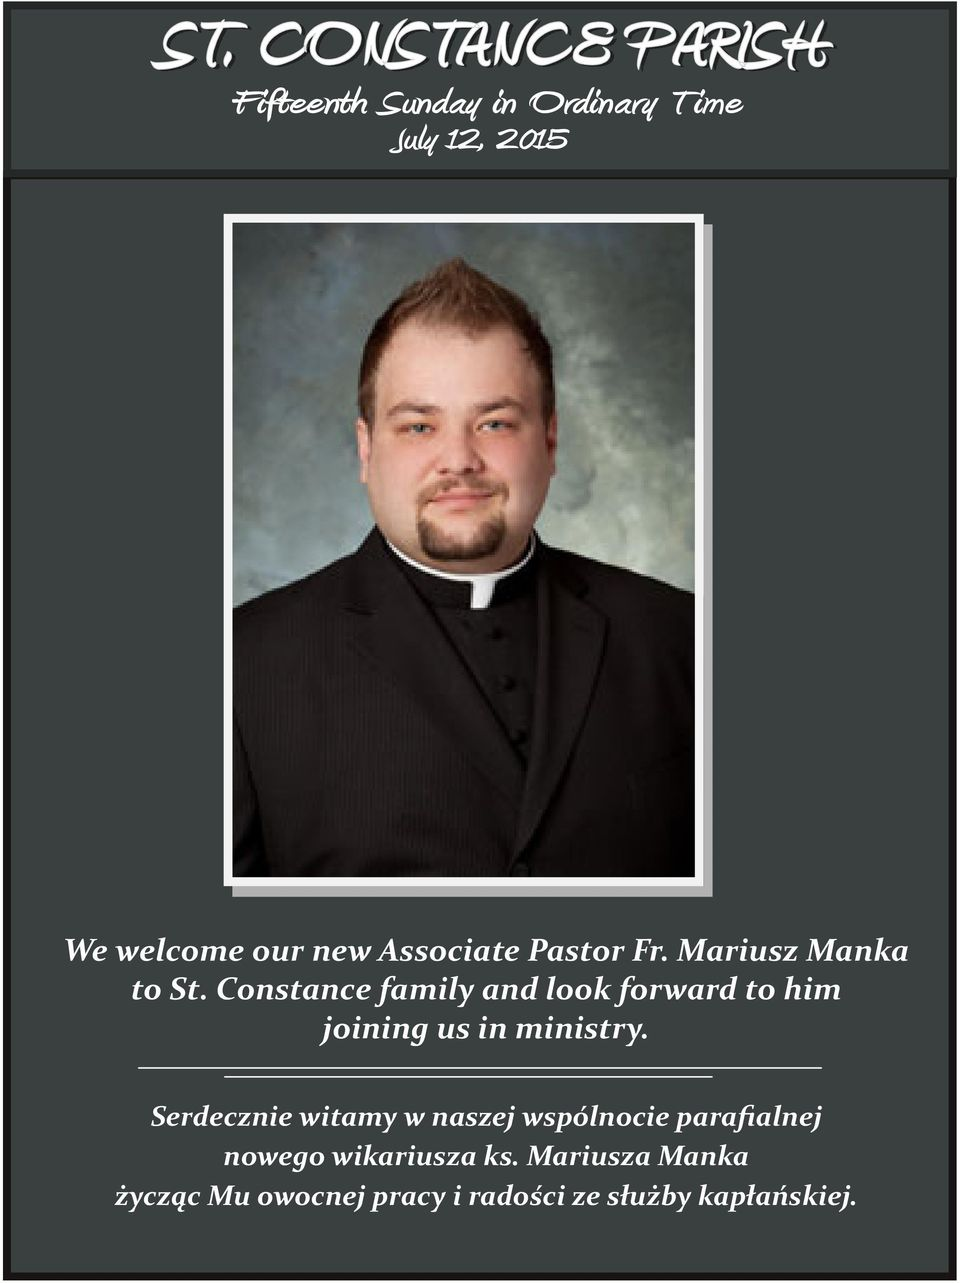 Constance family and look forward to him joining us in ministry.